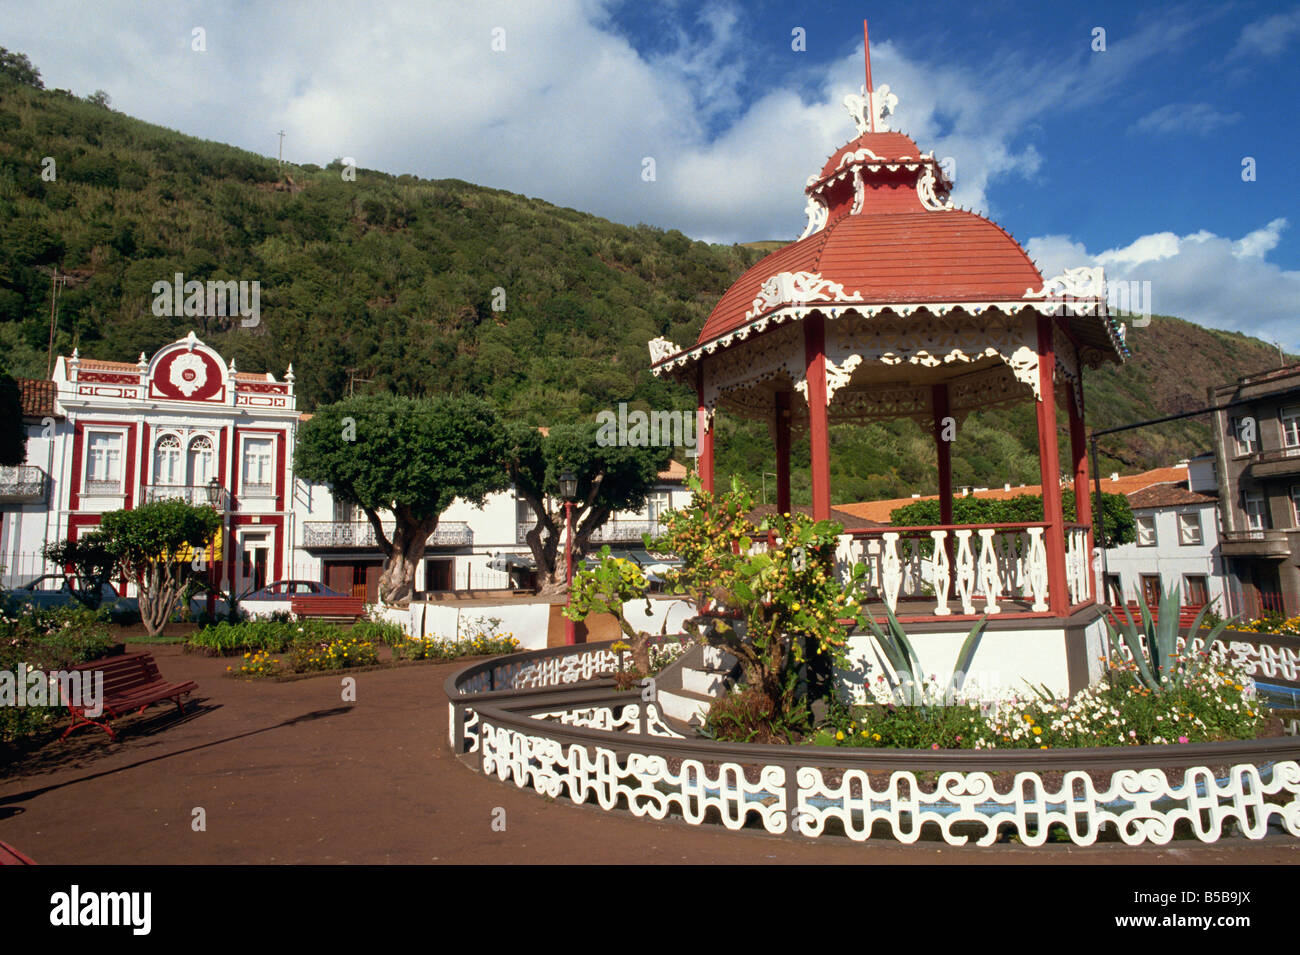 Bandstand in municipal gardens Velas Sao Jorge Azores Portugal Europe - Stock Image